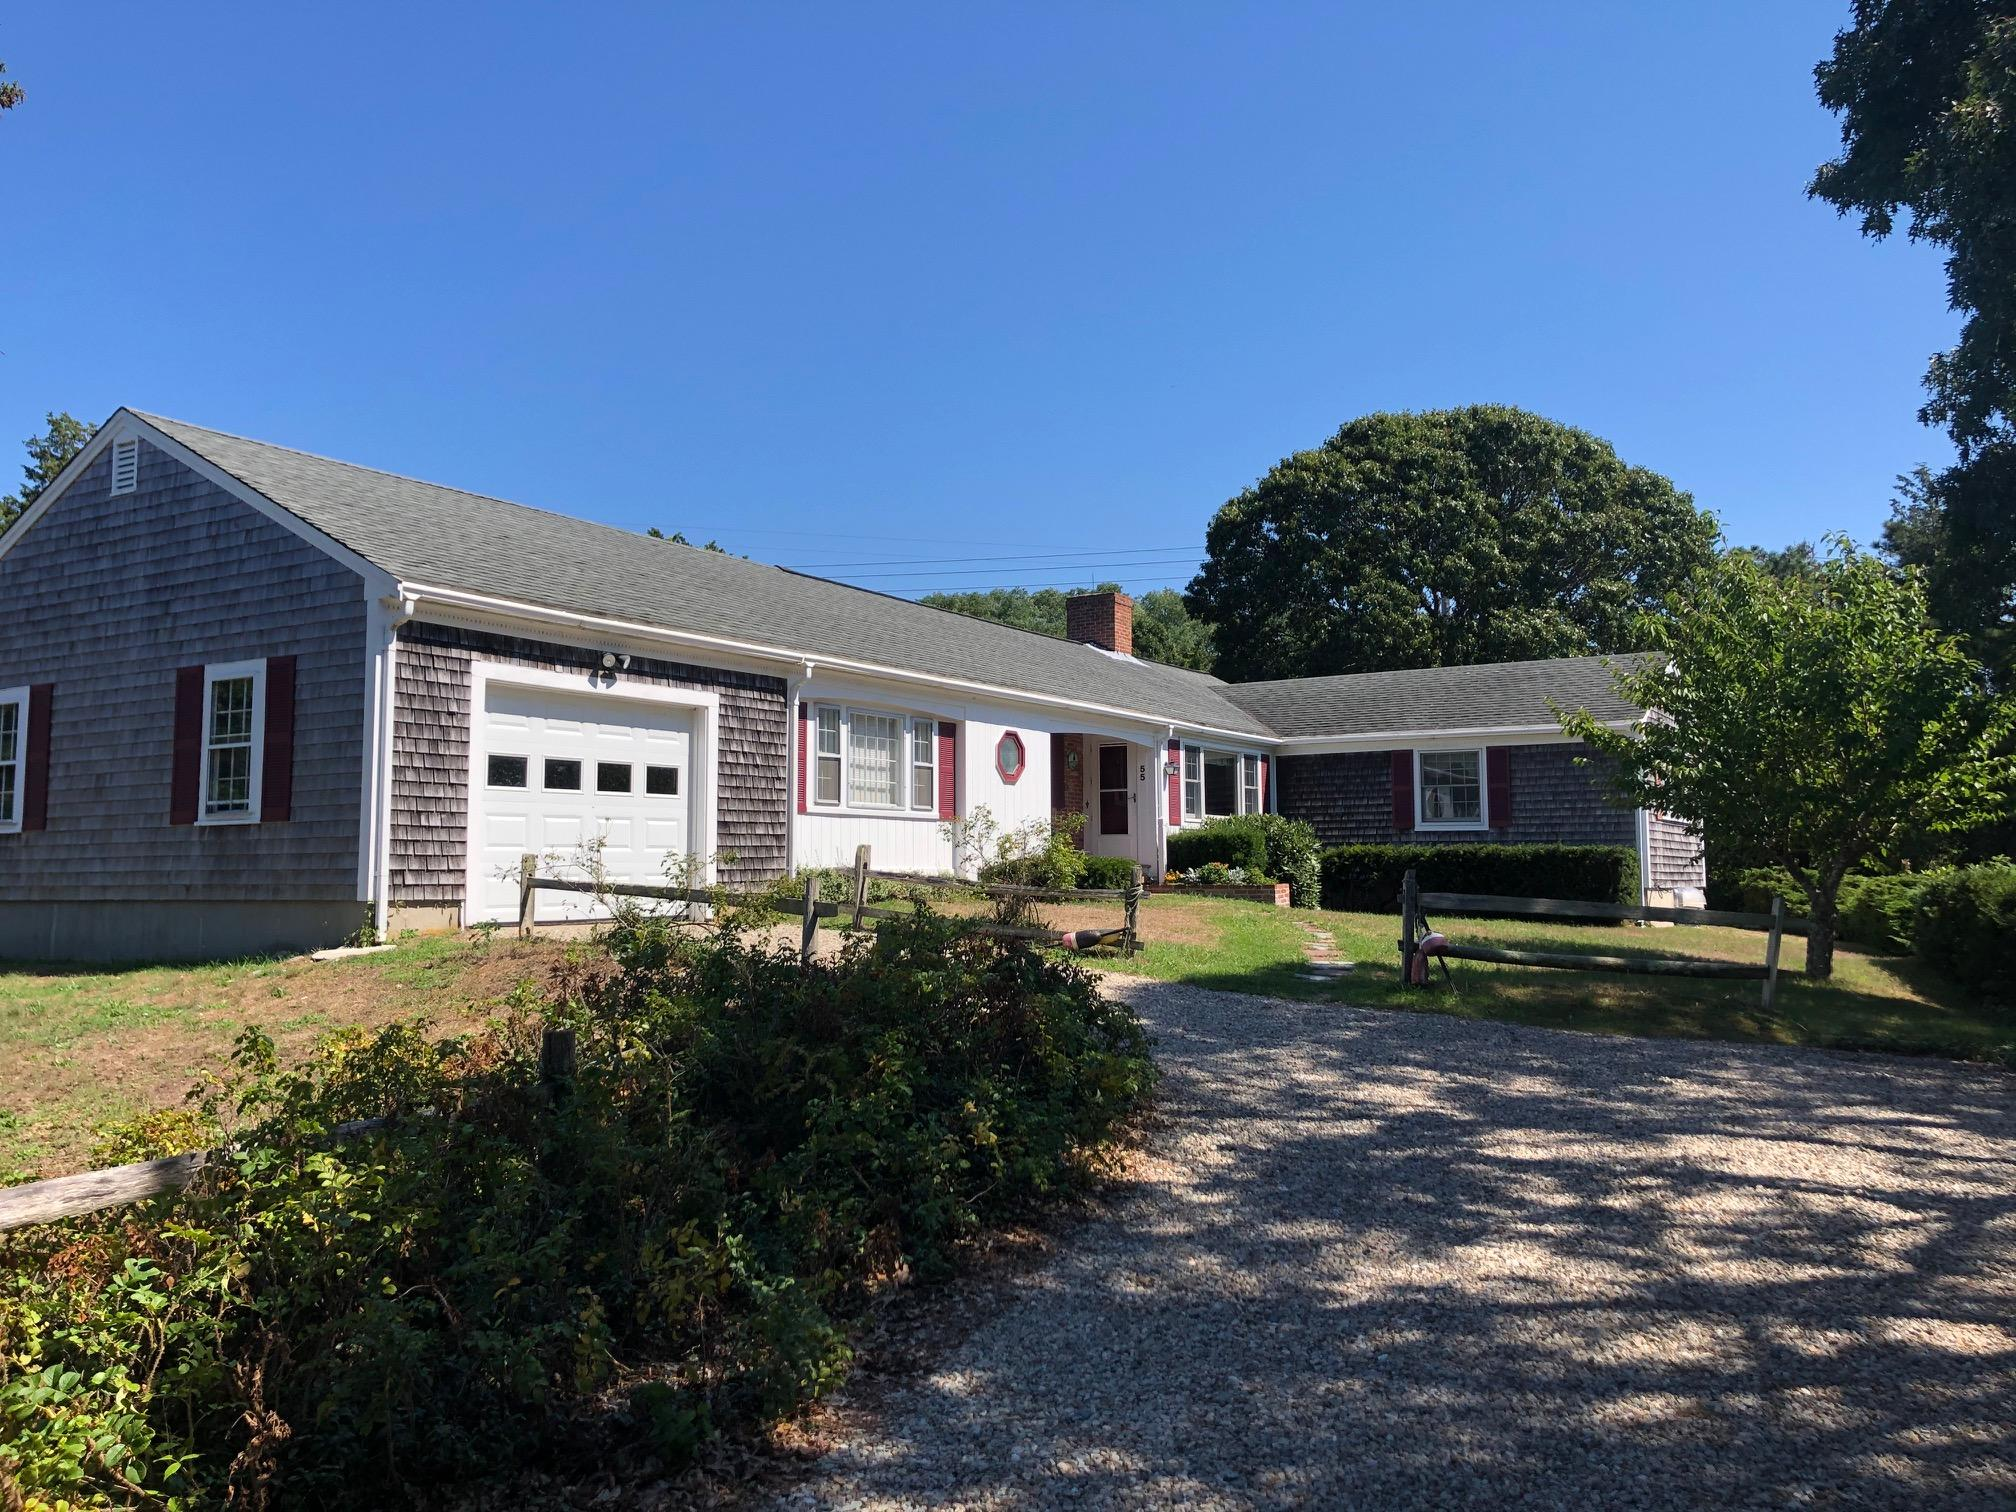 55 Nickerson Road, Eastham MA, 02642 details